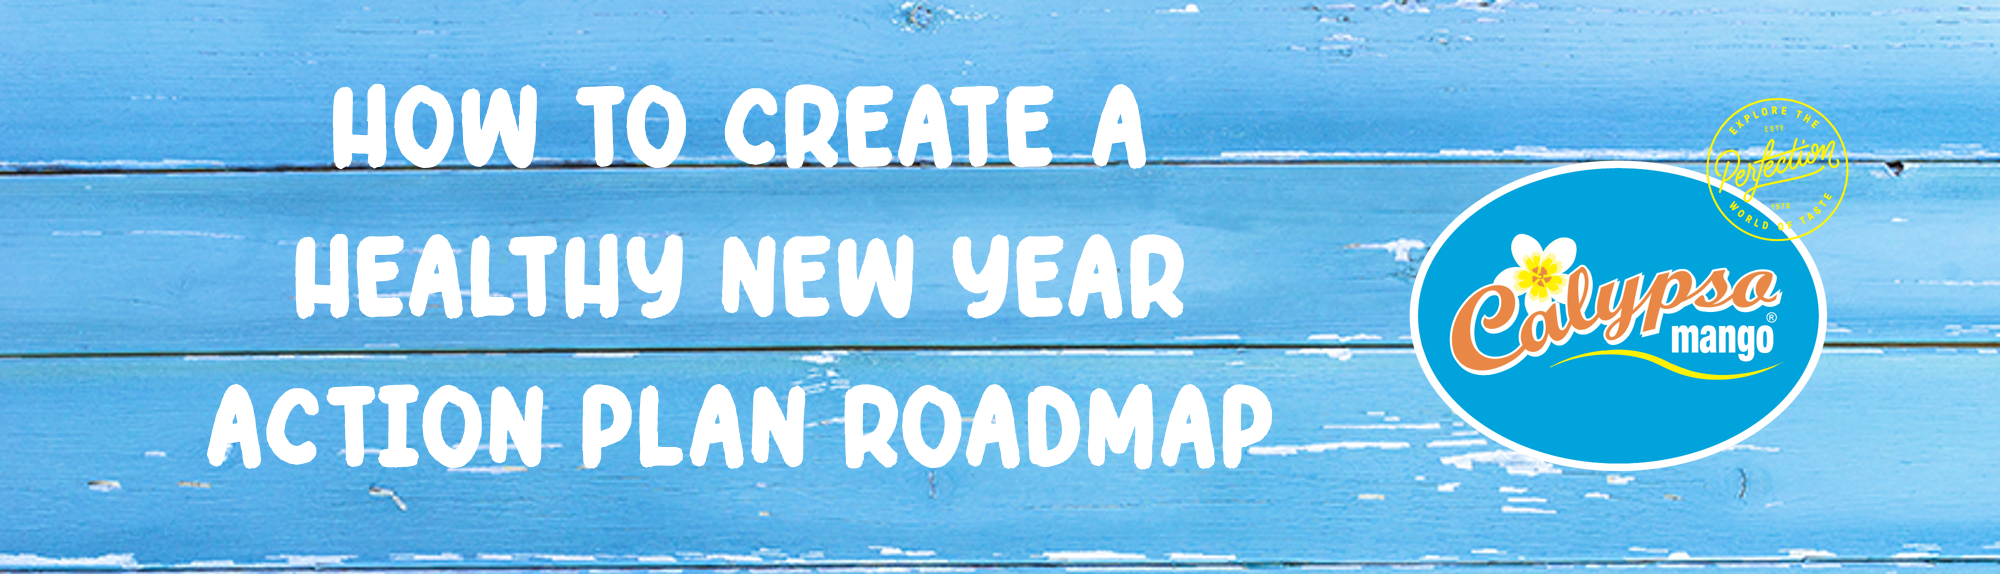 How to create a healthy new year action plan roadmap cover